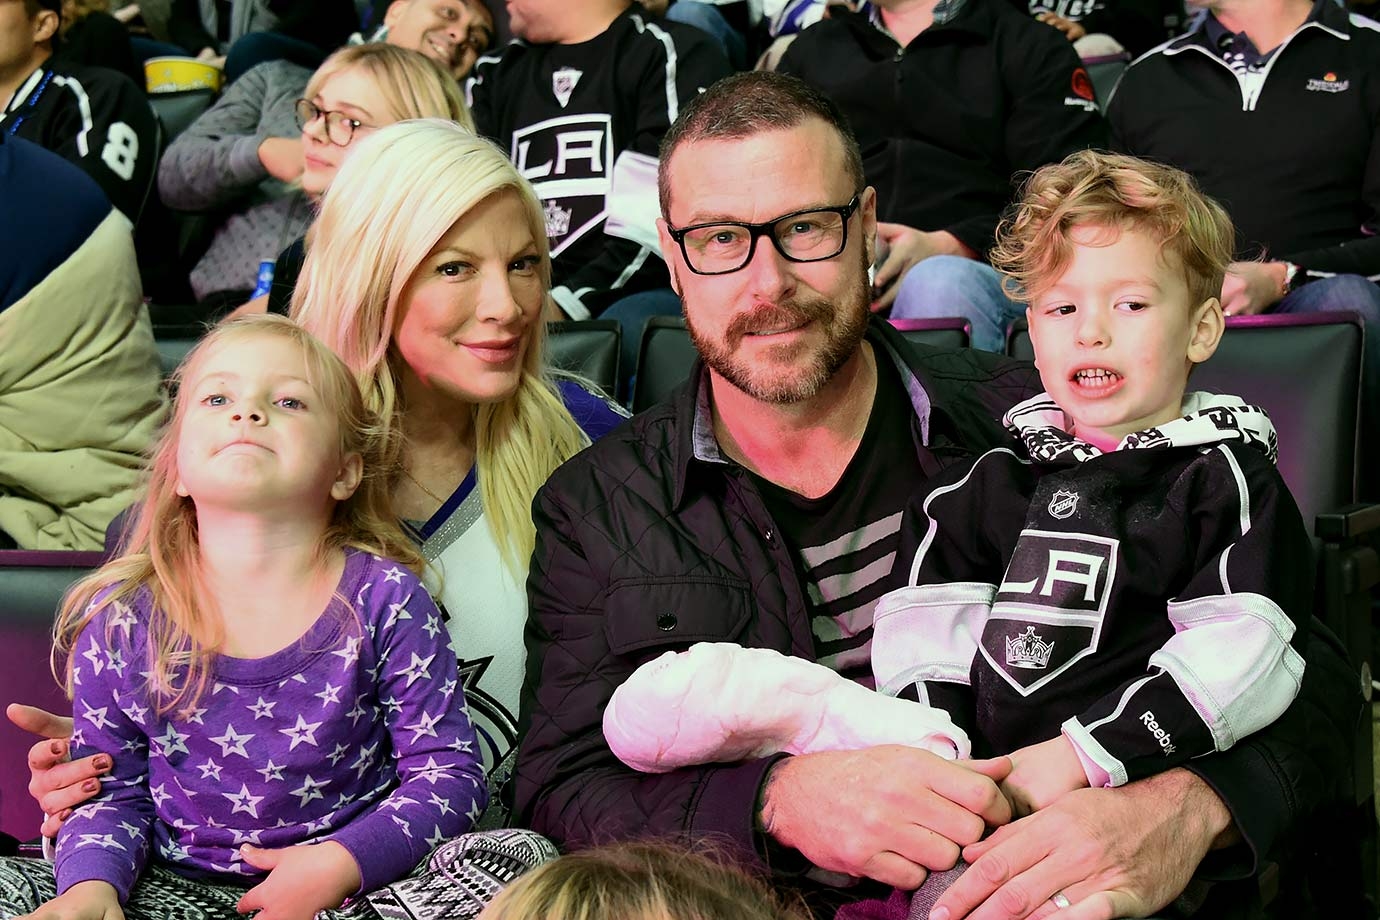 Los Angeles Kings vs. Vancouver Canucks on December 1, 2015 at Staples Center in Los Angeles.